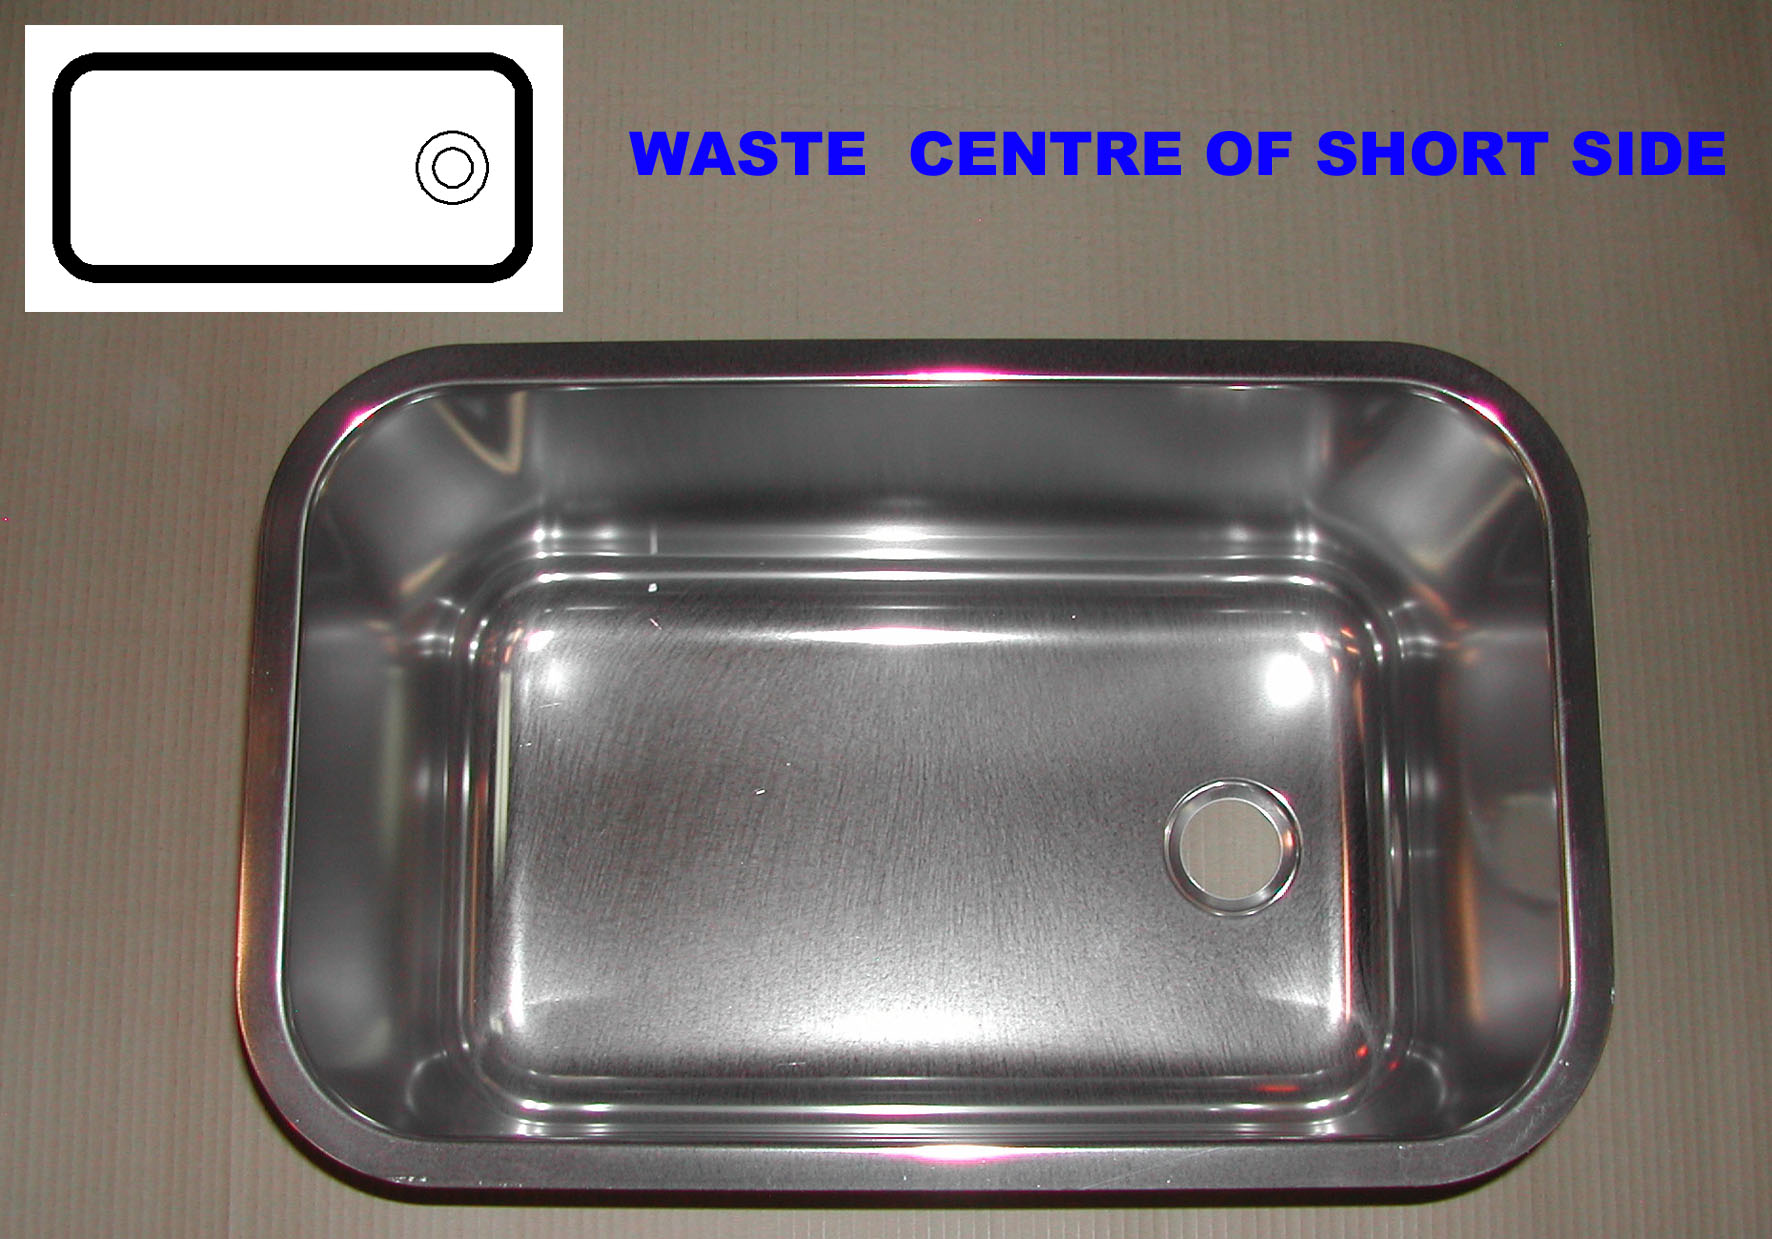 Oblong Sink 500 x 300 x 300mm deep ( Waste Hole In The Centre Of